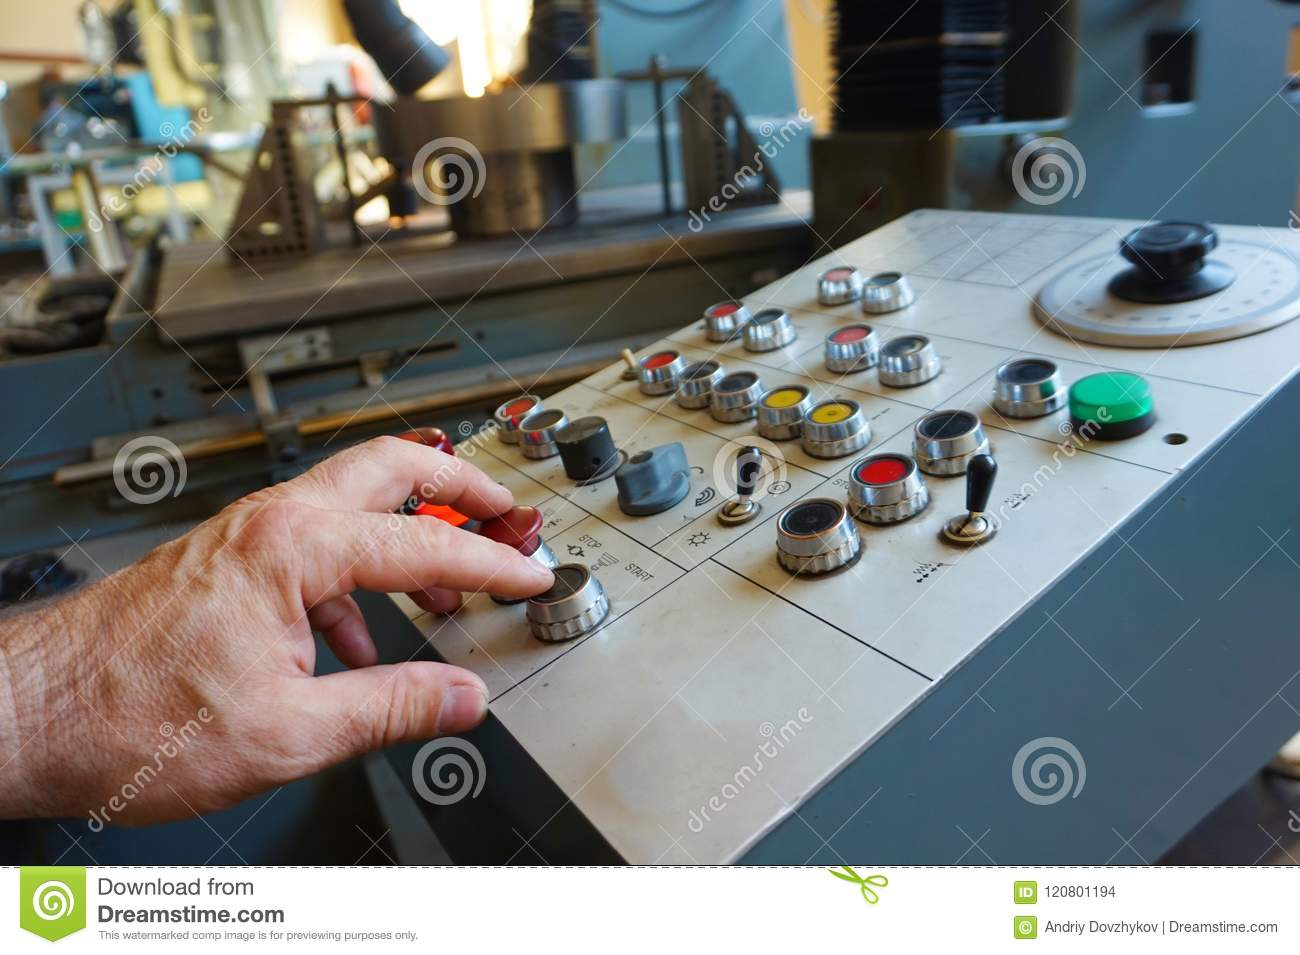 The worker uses the control panel of the CNC machine to process the material.